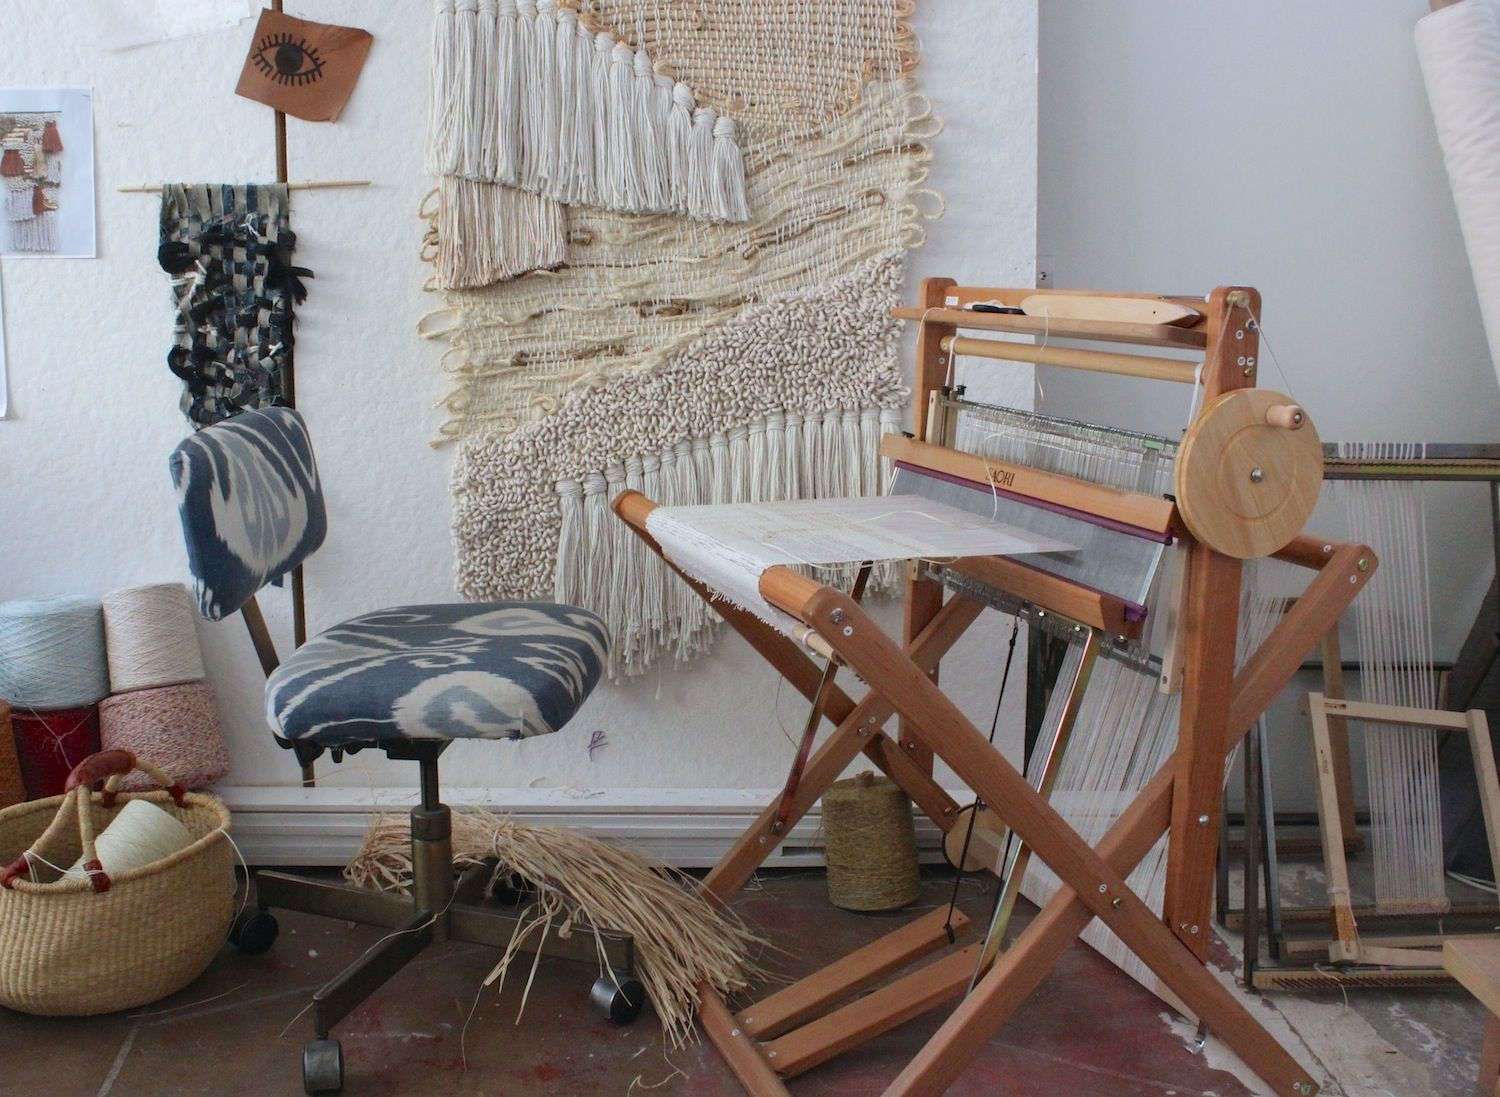 hanging chair urban outfitters desk part crossword blog dreamers and doers all roads